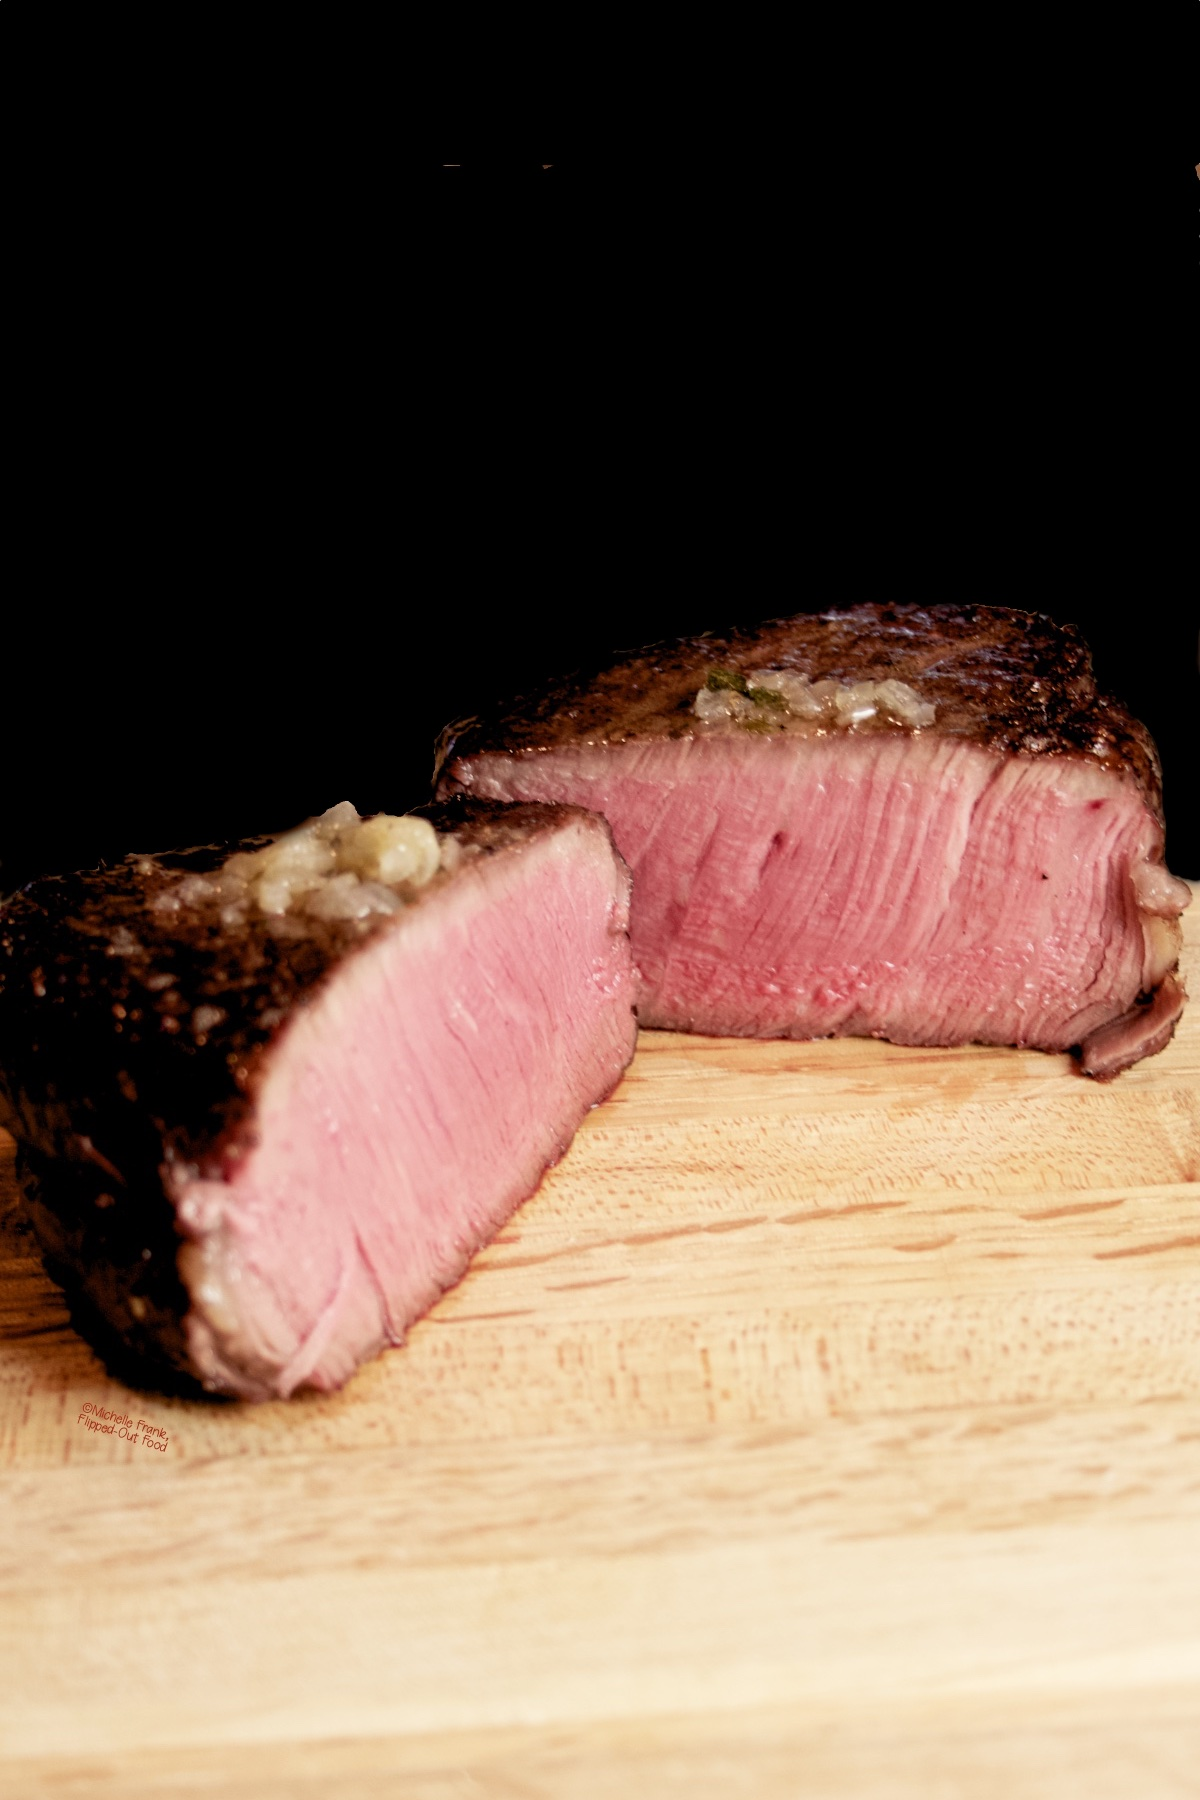 Reverse-Sear Filet Mignon Steak: a side view of one steak cut in half to show the perfect medium-rare interior.